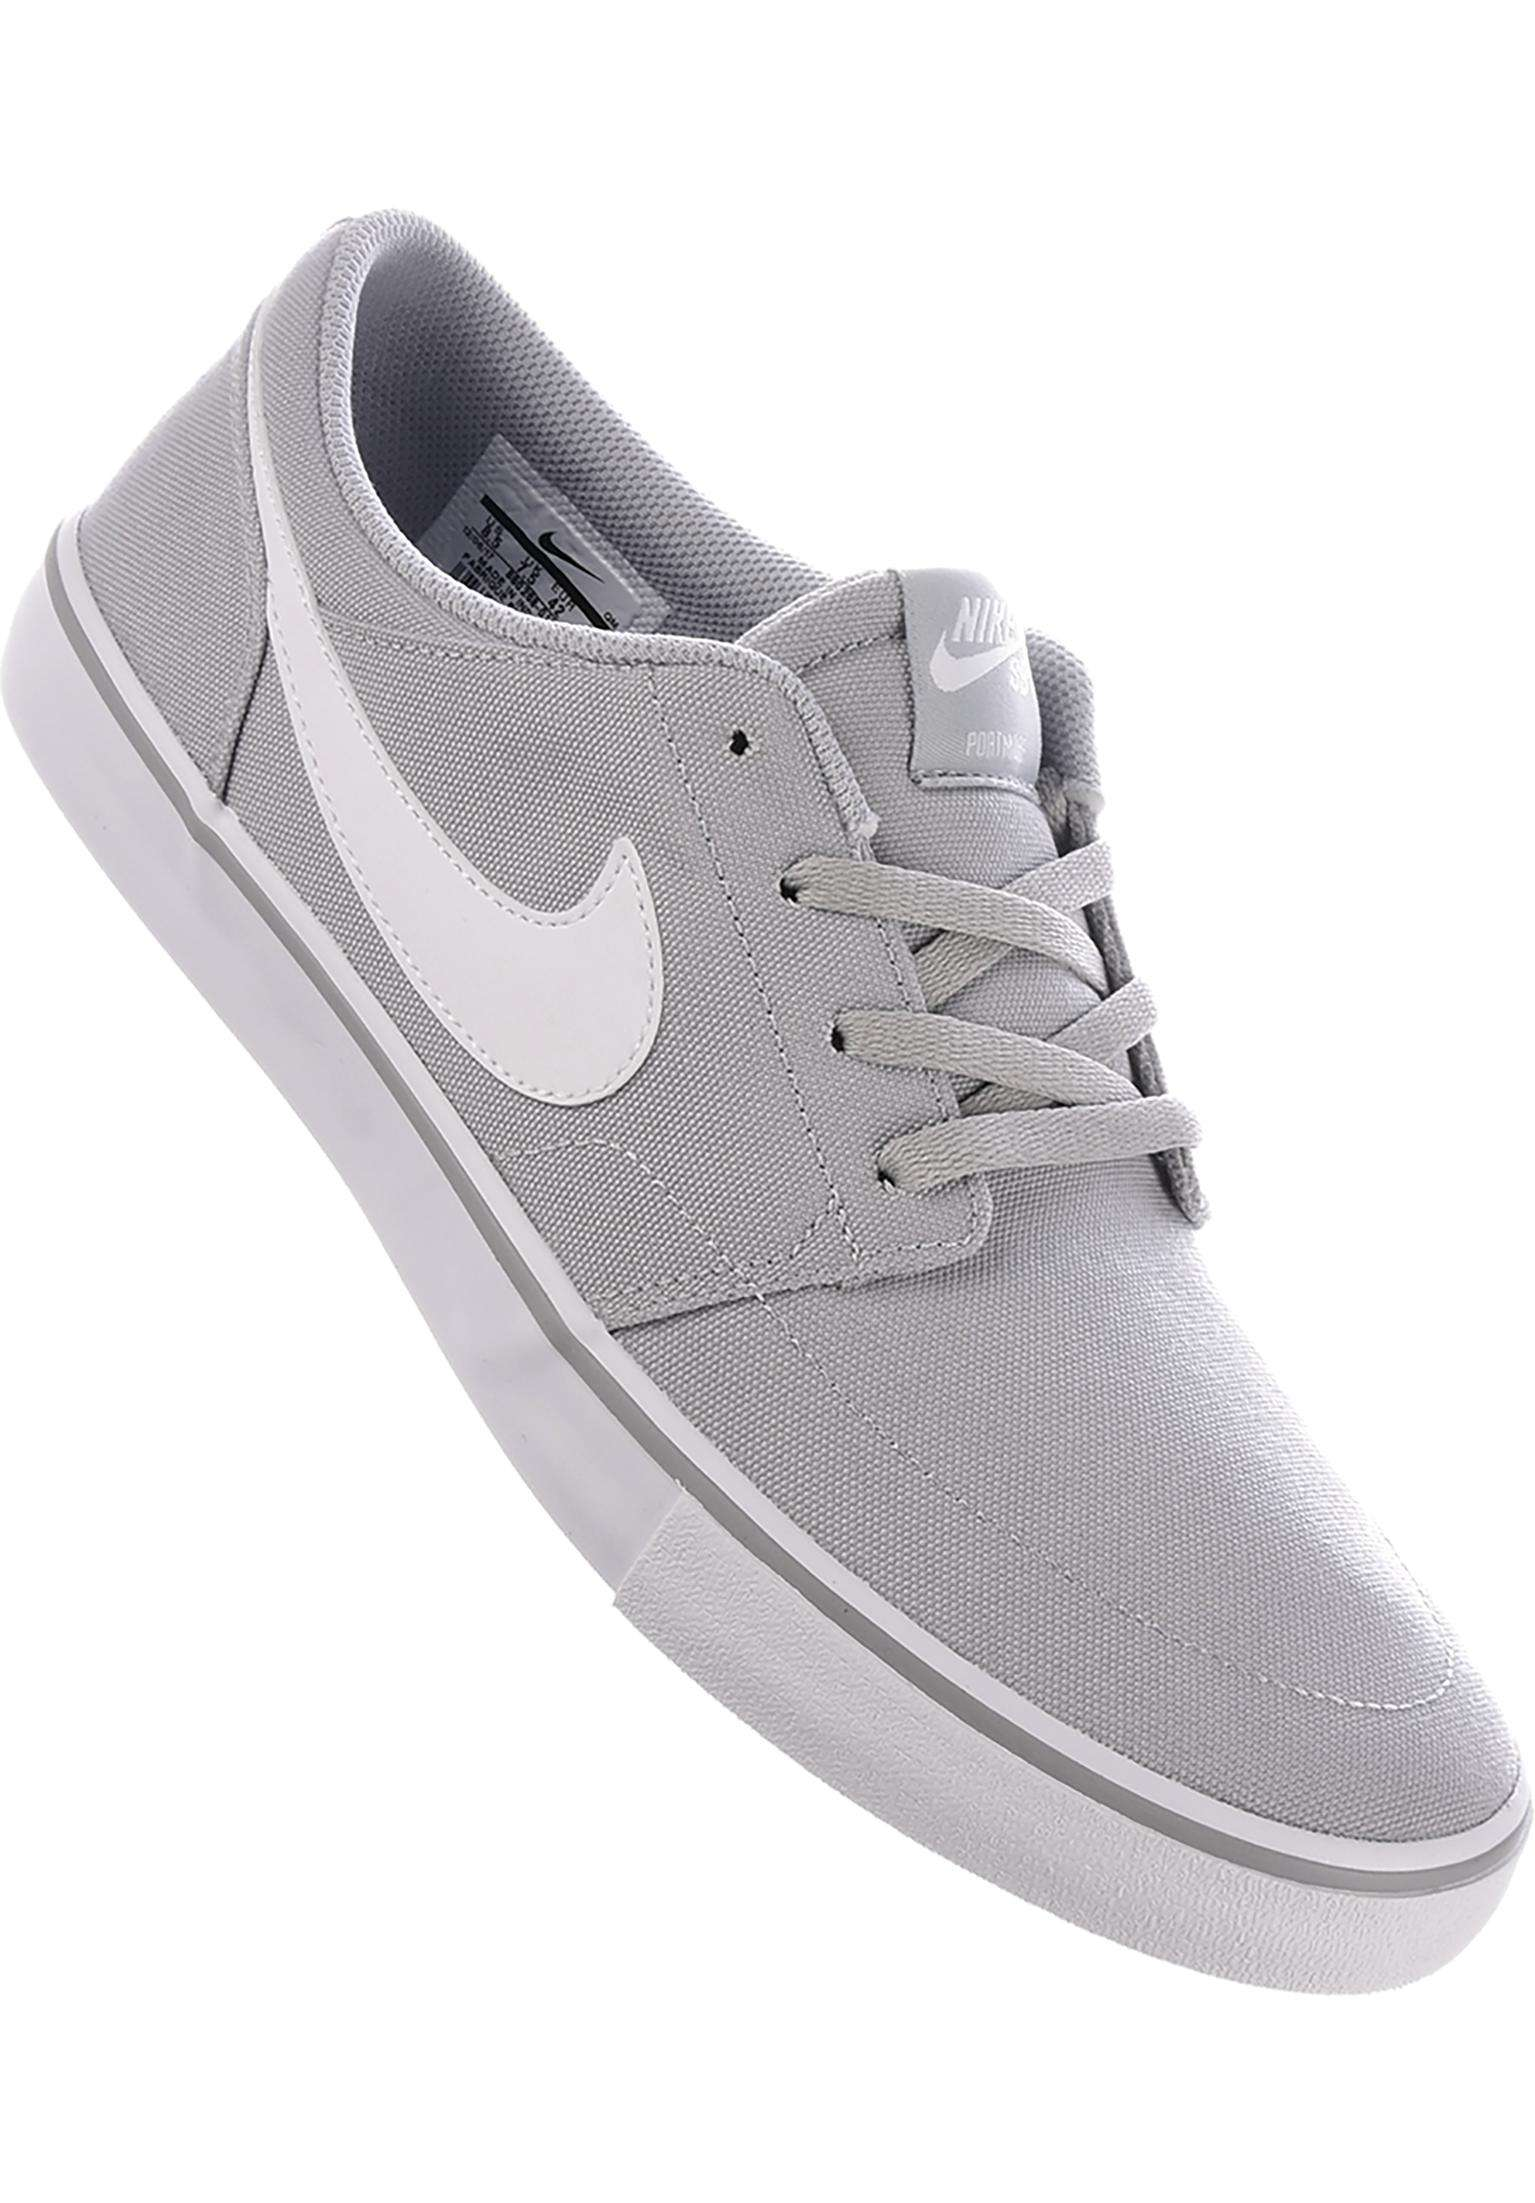 new product bcacb 08bec Solarsoft Portmore II CNVS Nike SB All Shoes in wolfgrey-white for Men    Titus